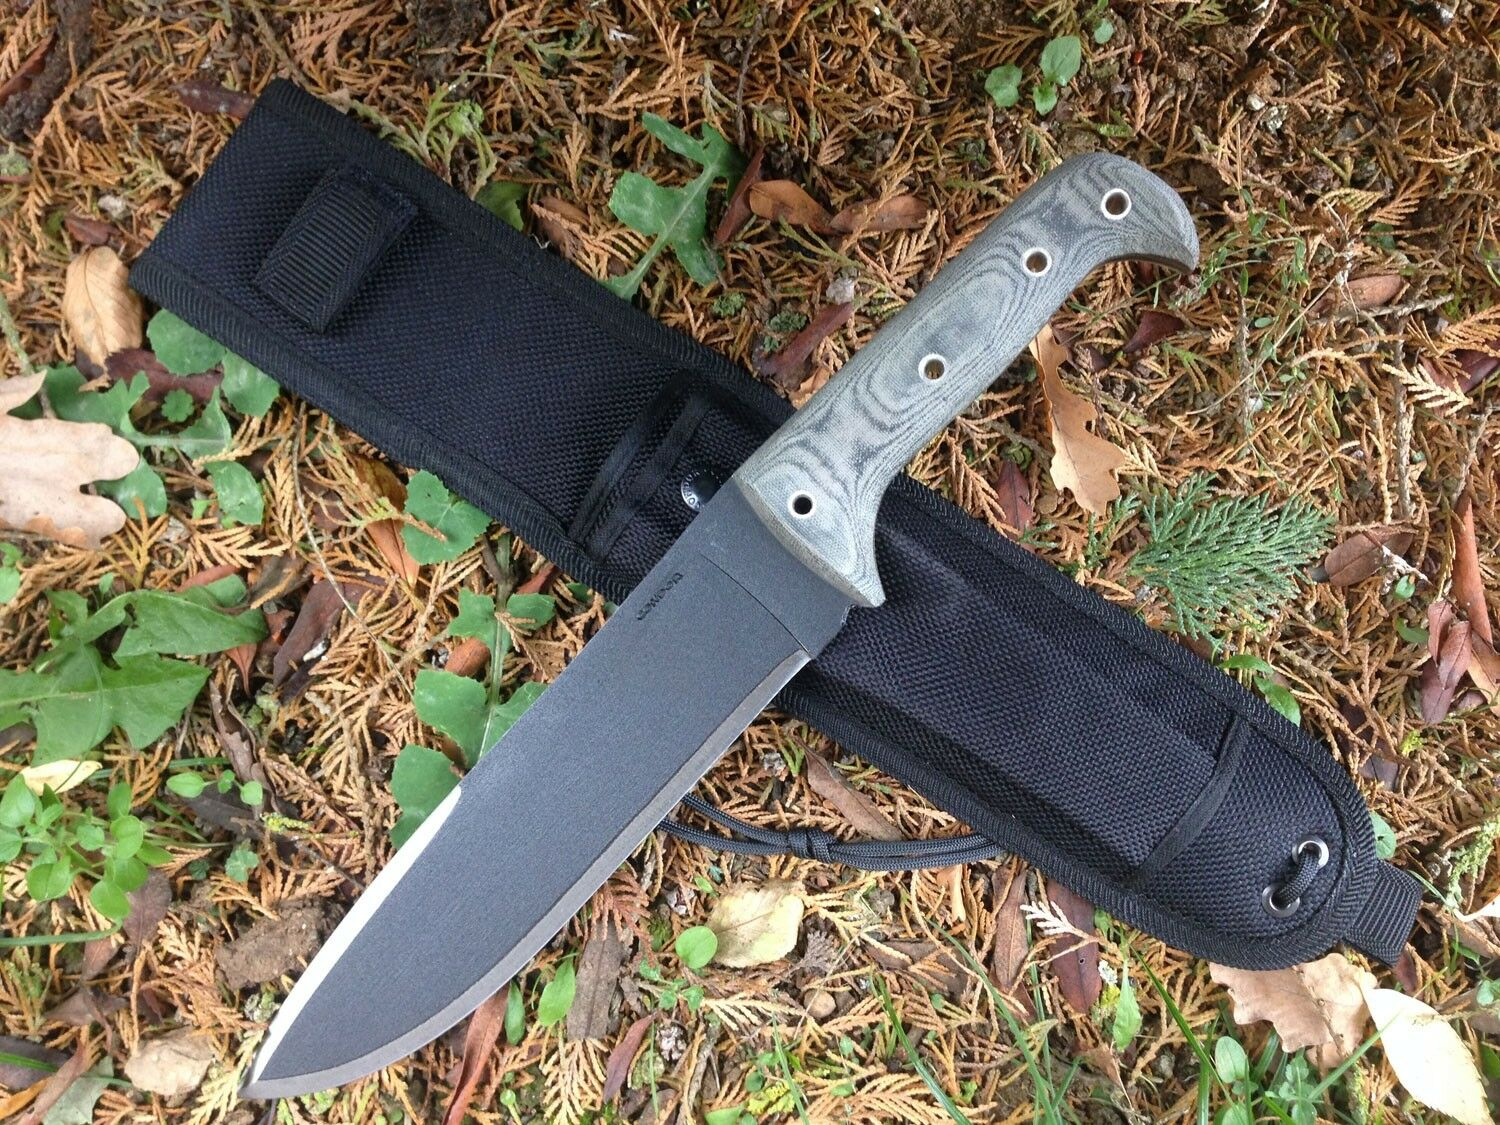 Condor Coltello KNIFE moonstalker coctk 258-9hc